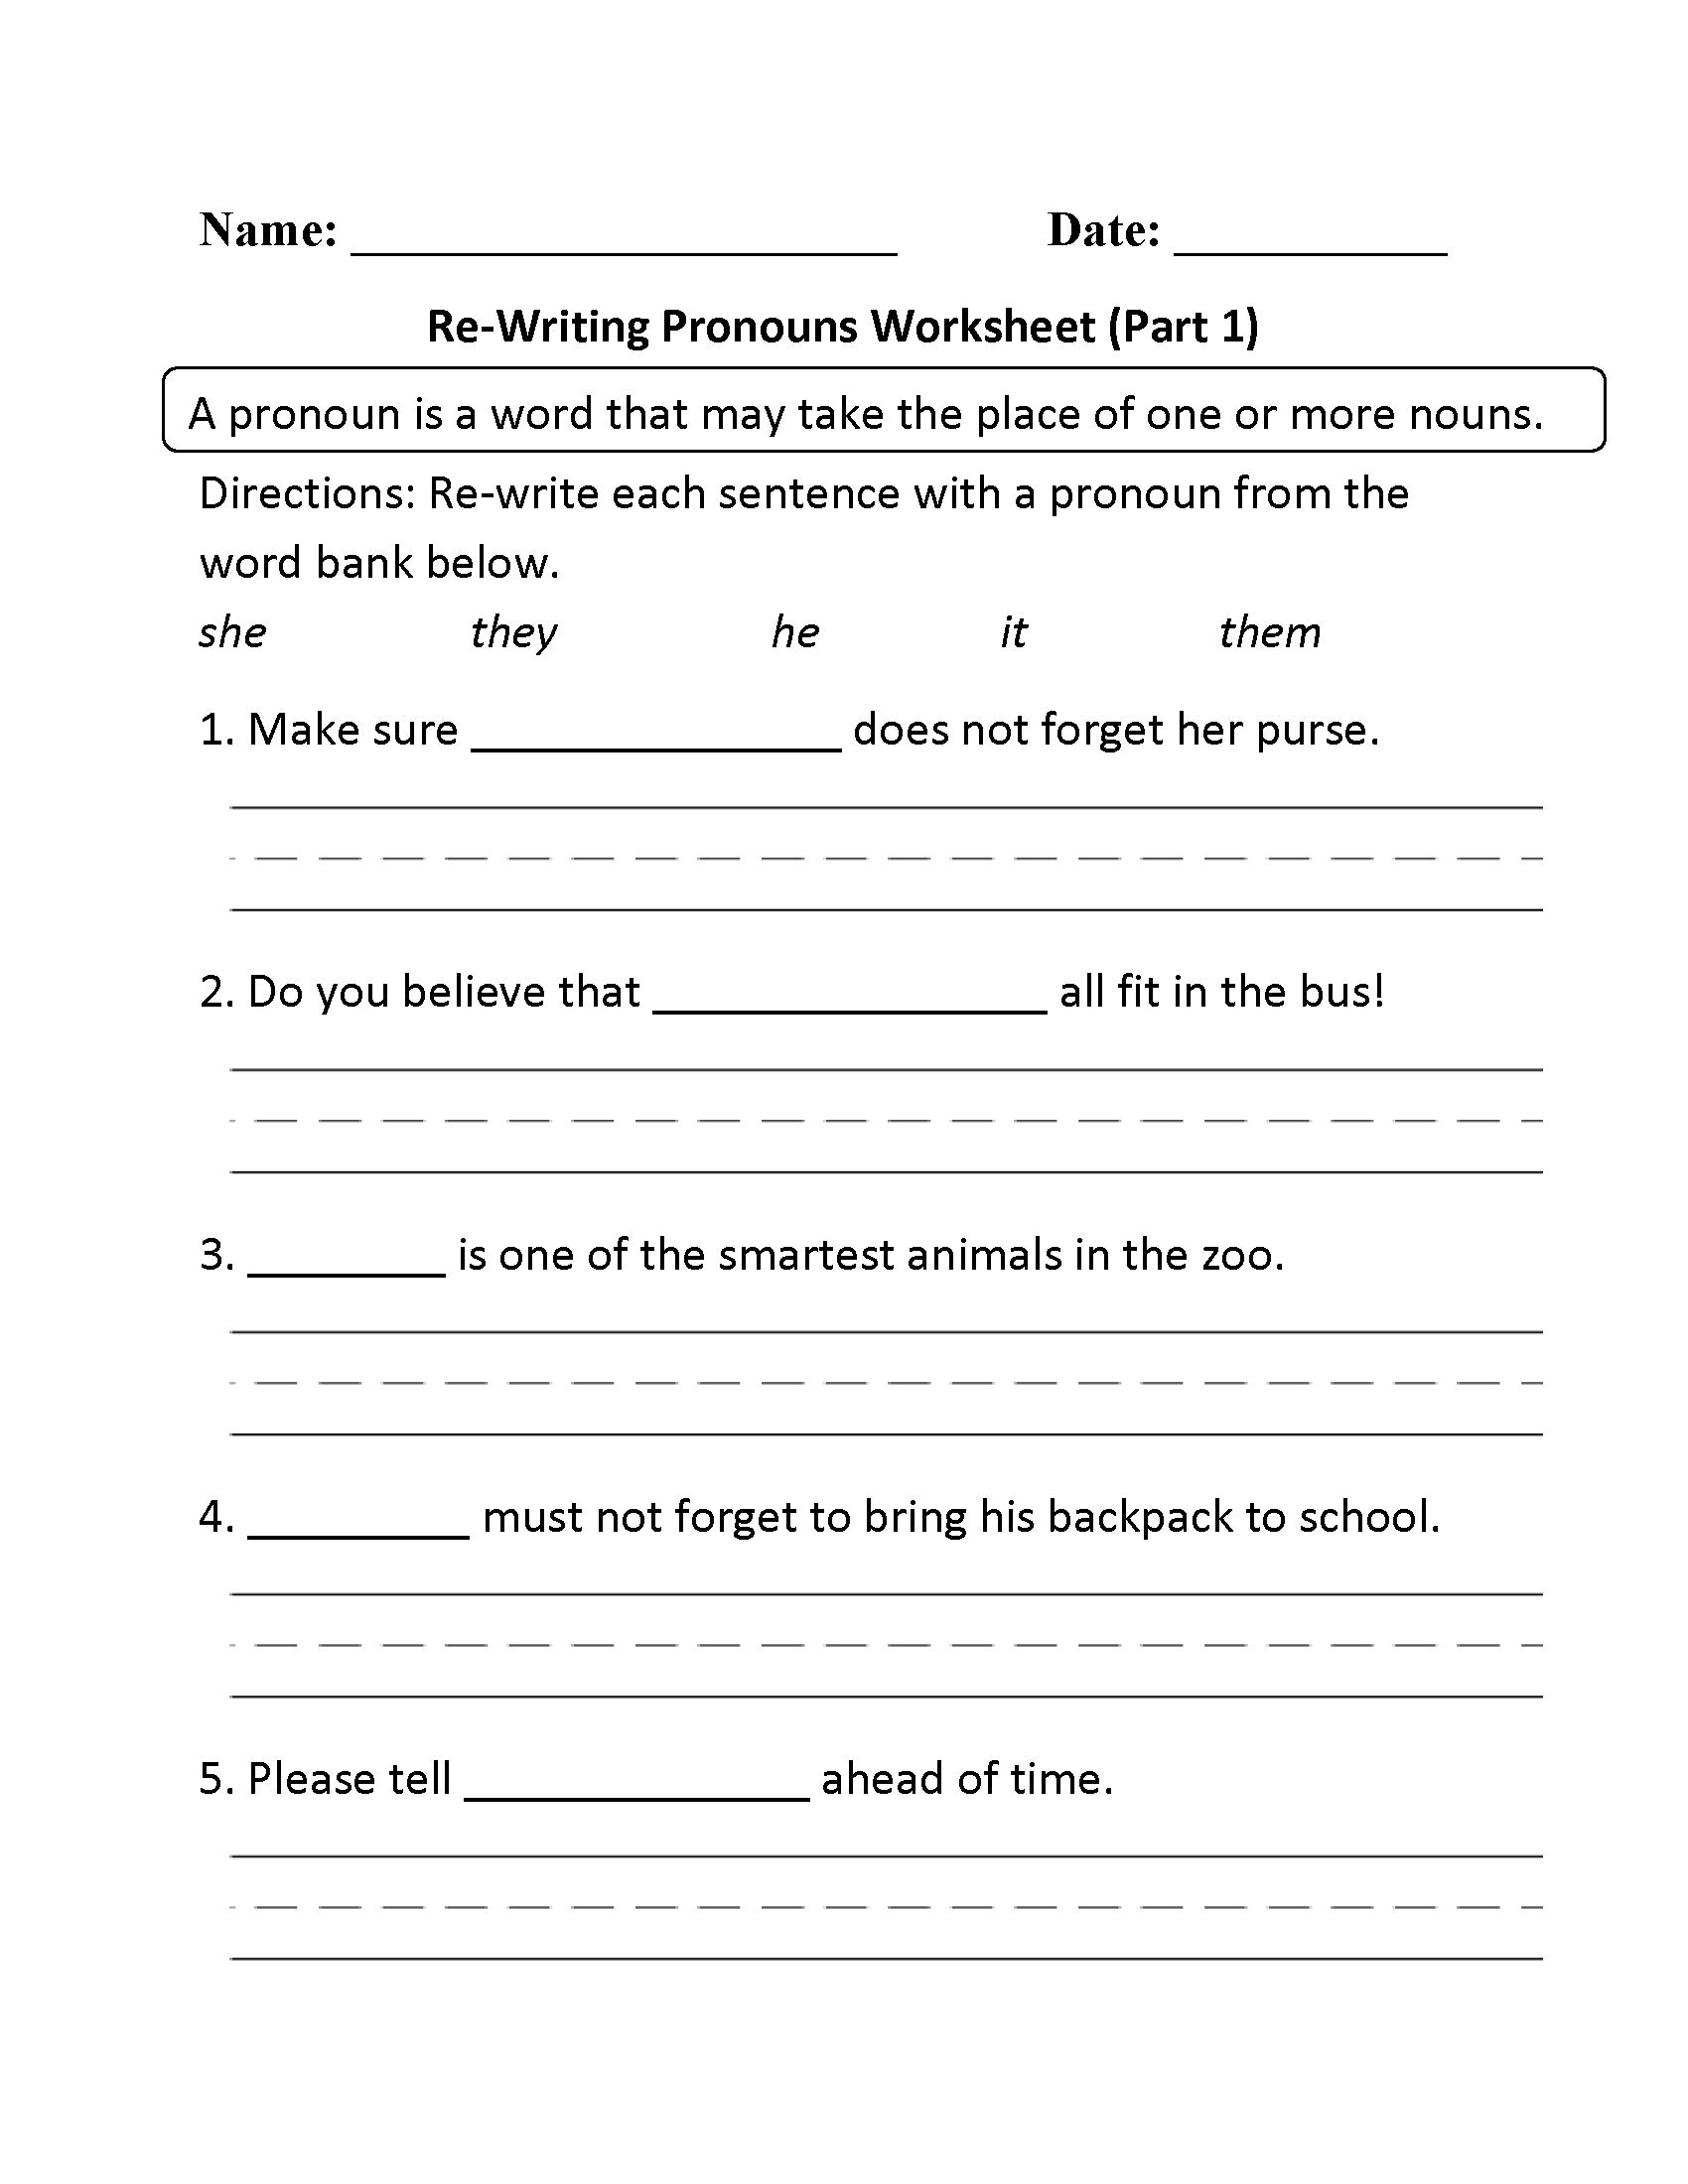 Possessive Pronouns Worksheet 2nd Grade Possessive Pronouns Worksheet Free Printable